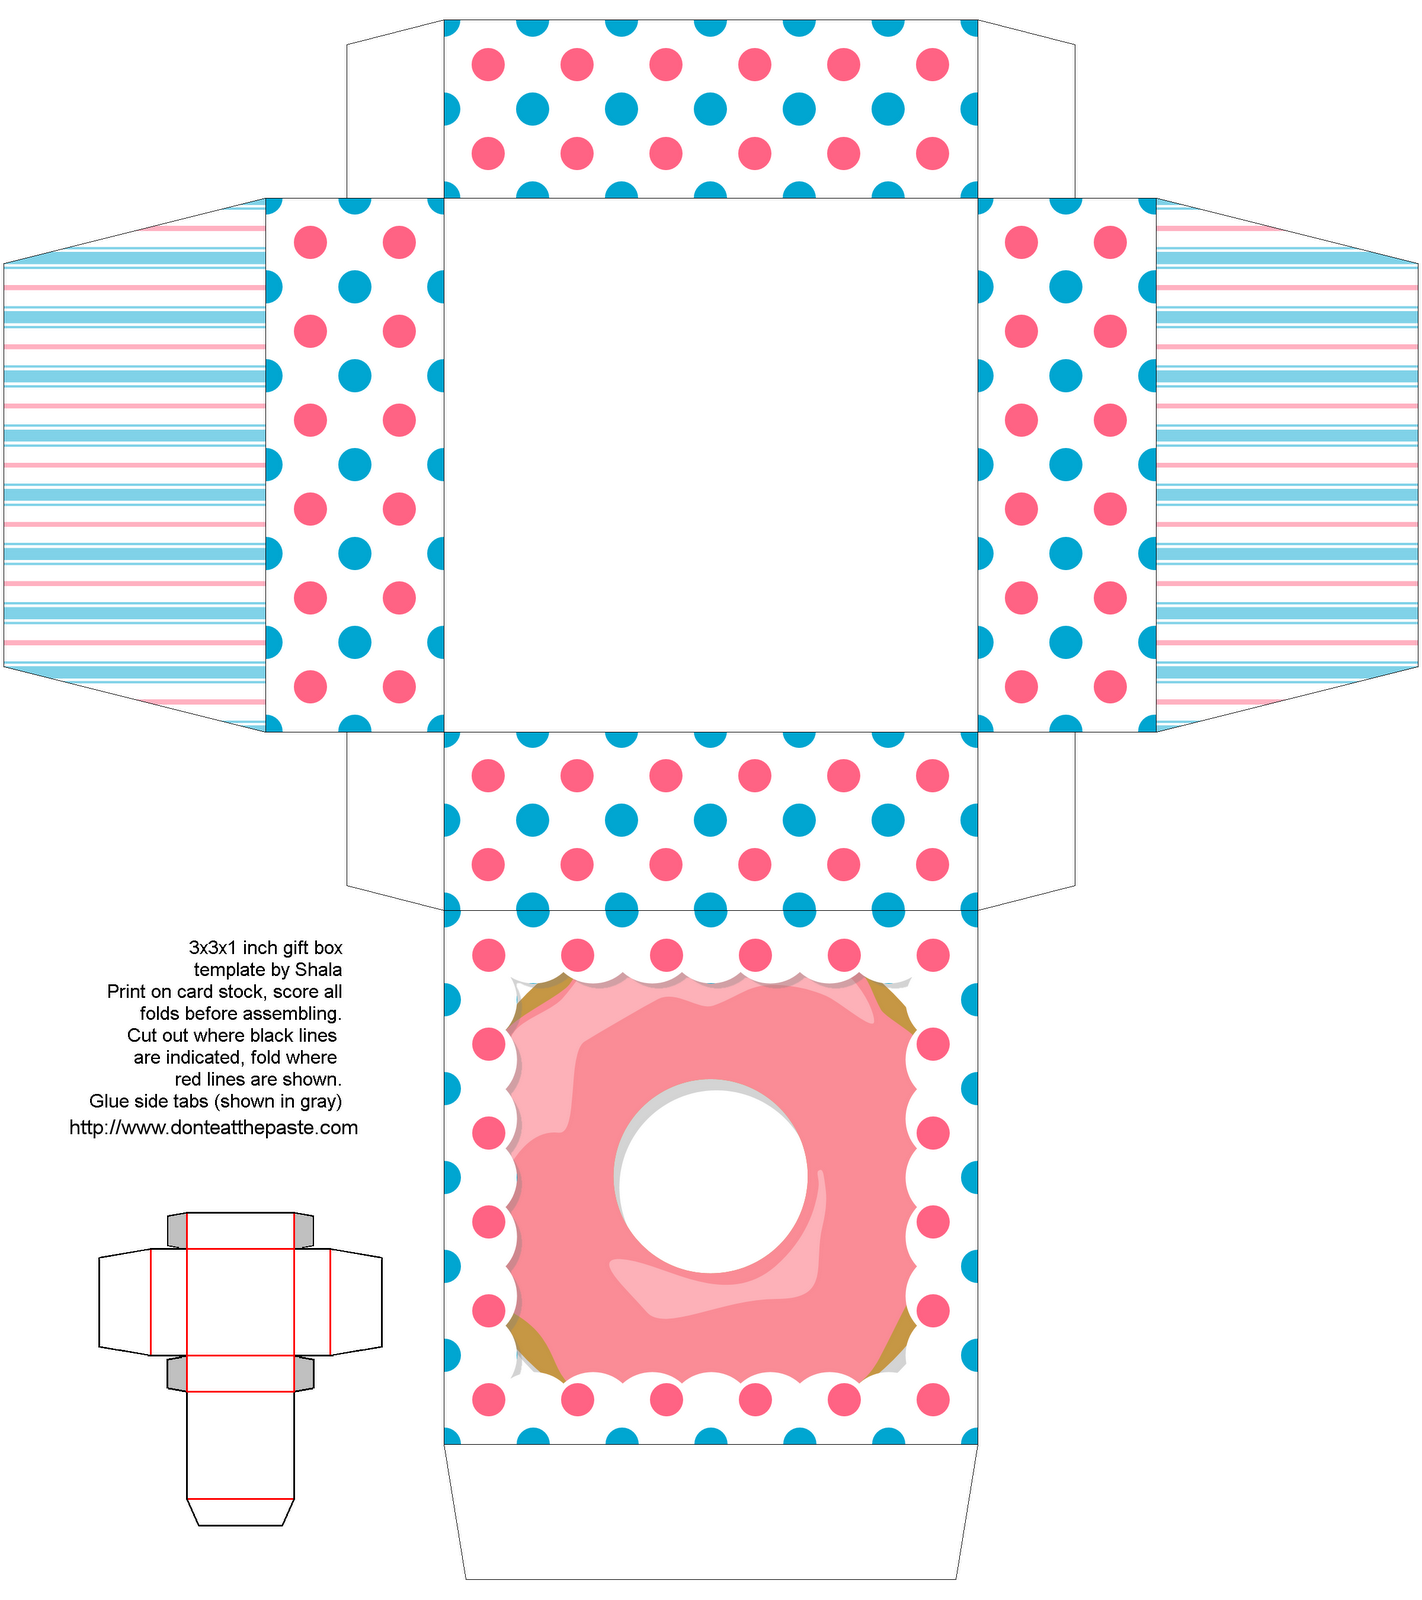 Free Template Donut Box Template | Edible home crafts | Pinterest ...